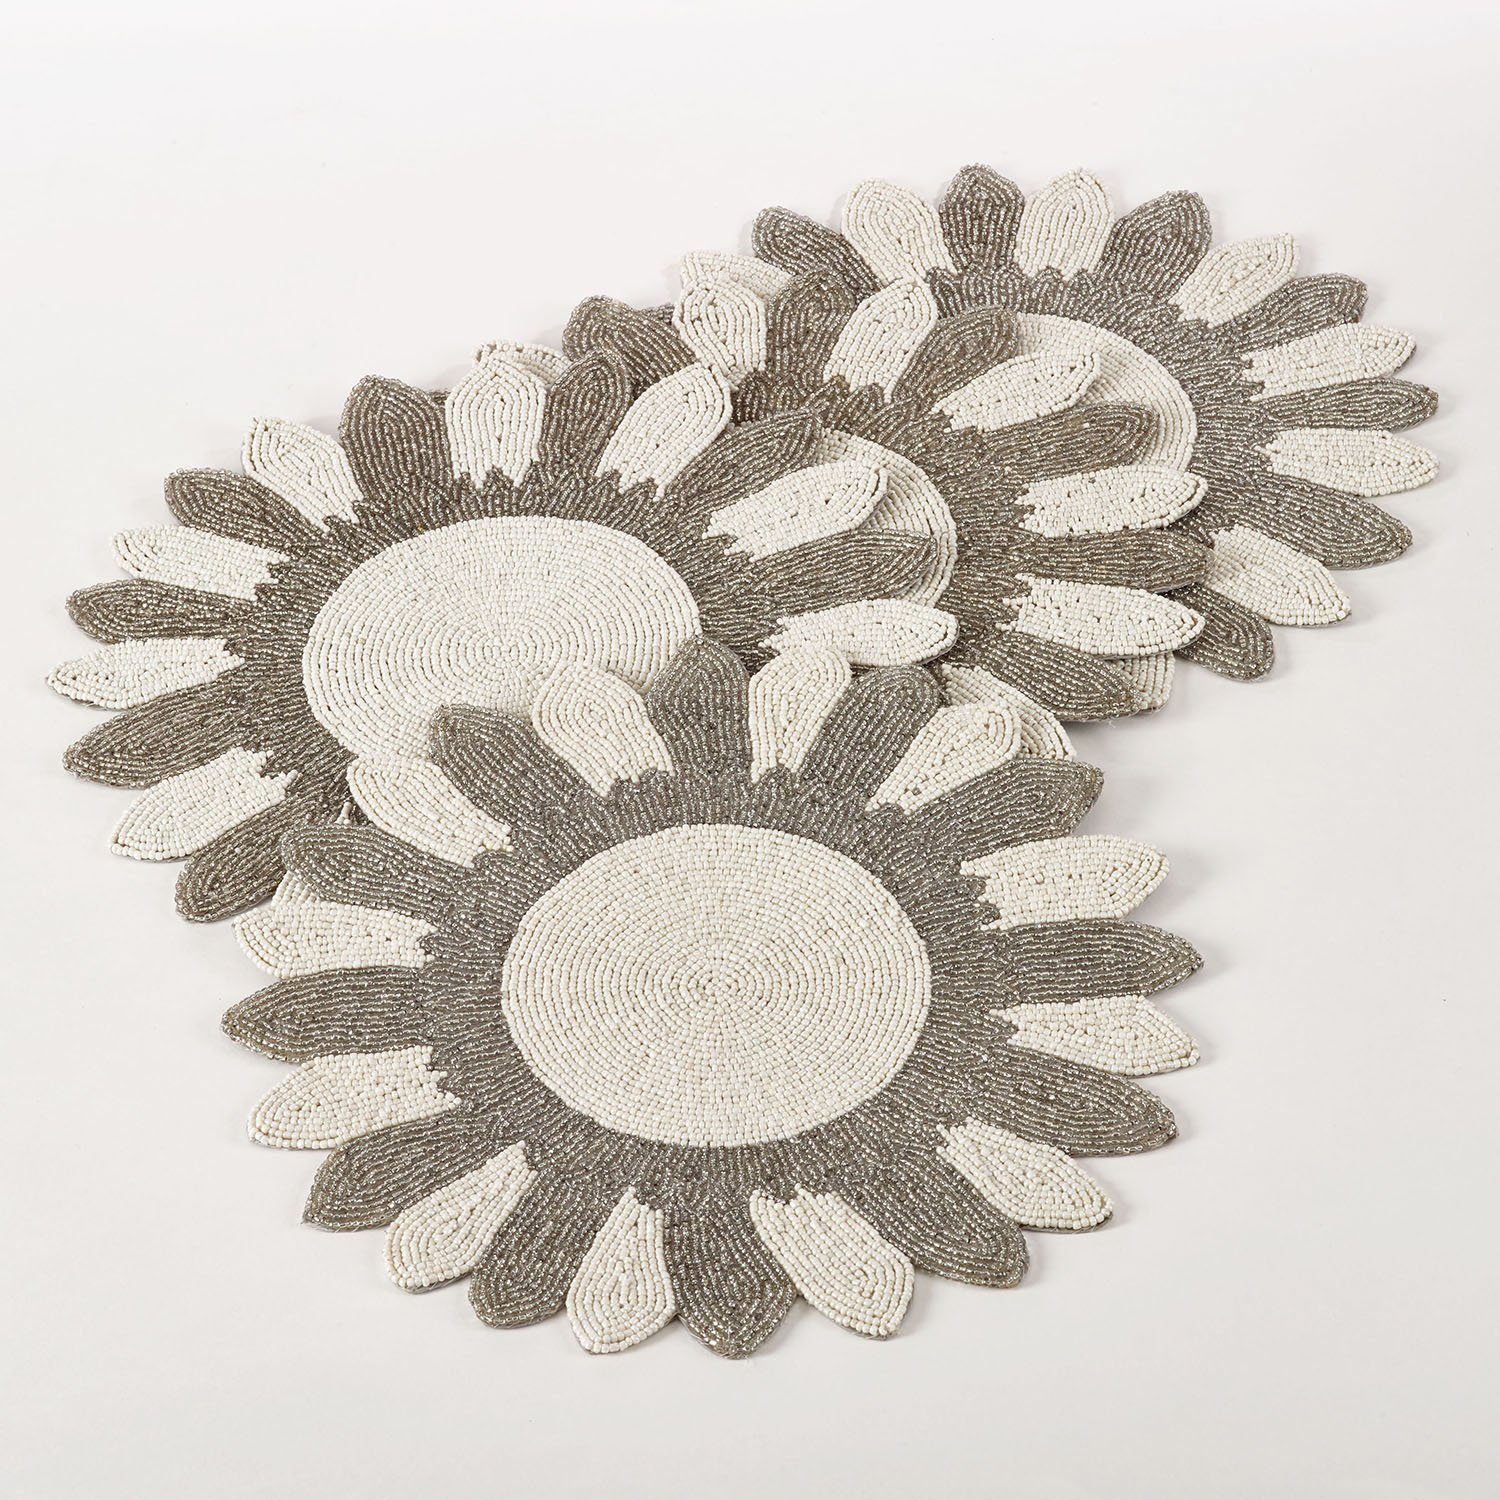 Multi Color Flower Design Beaded Placemat 14'' Round , (4 Piece Set) by Occasion Gallery (Image #1)